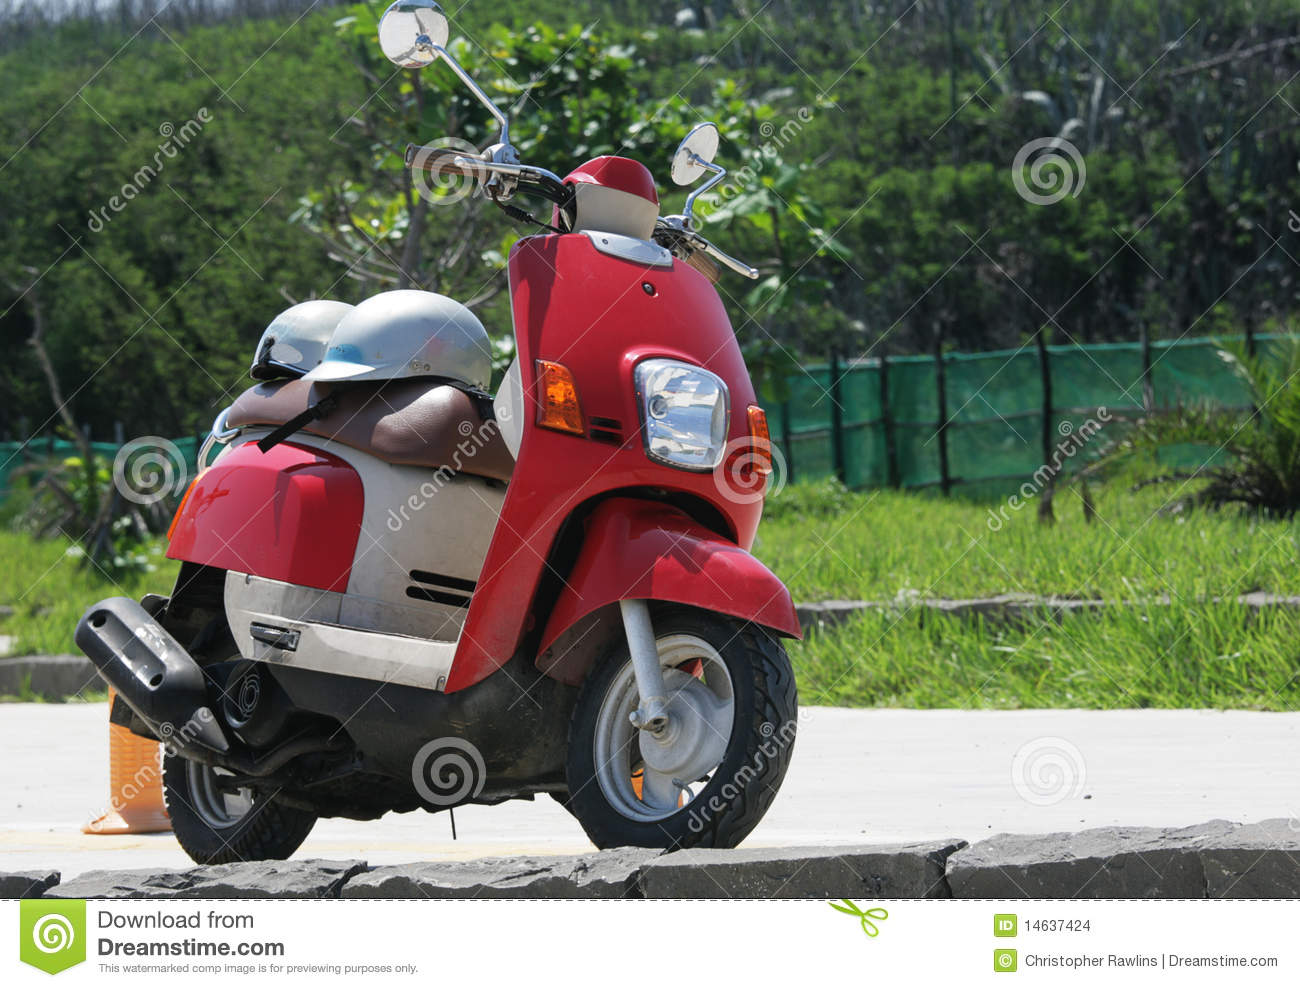 Go Travel with a Red Scooter